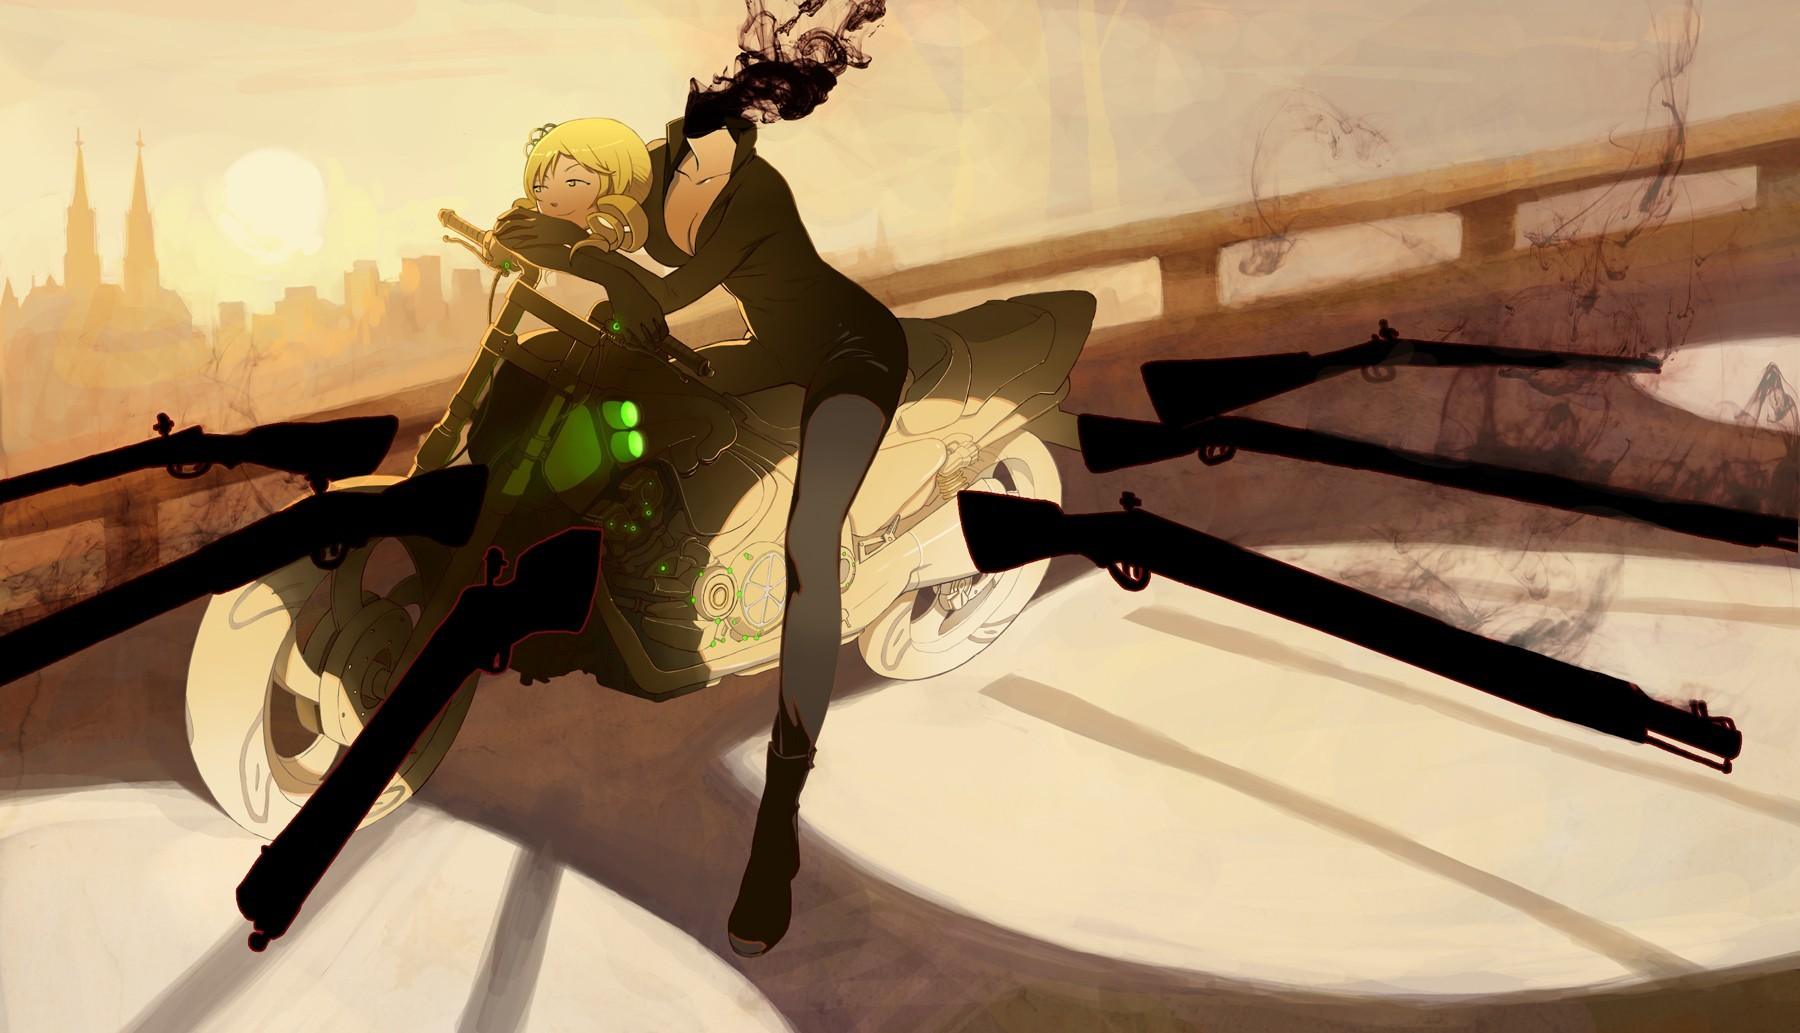 Guns durarara mahou shoujo HD Wallpaper